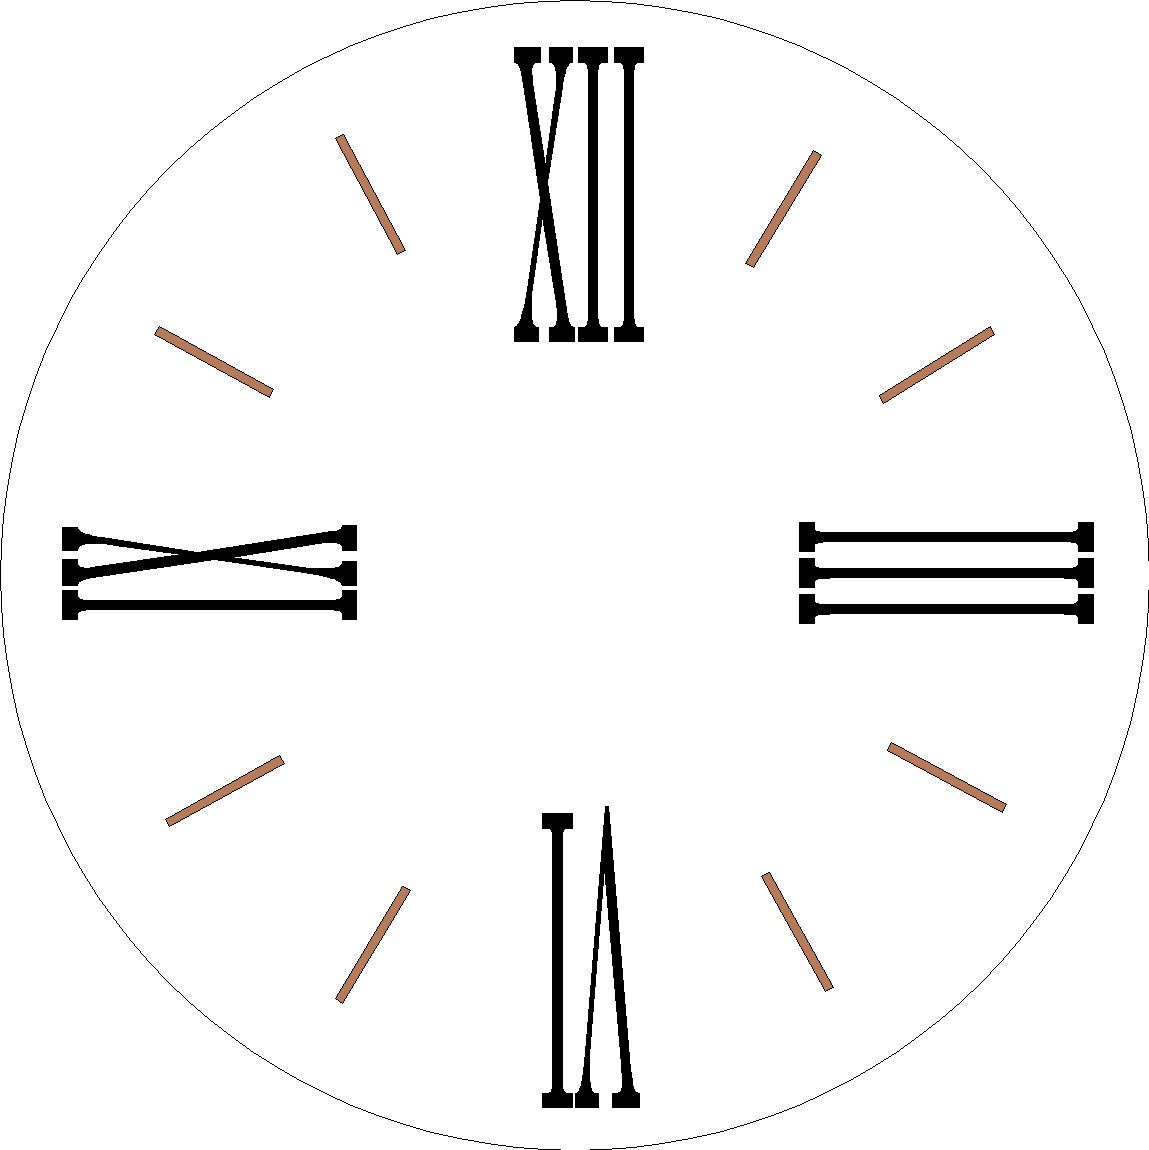 By Vinylexpress On Etsy Roman Numeral Stencil Or Decal Based A 30 Round Clock Face ONLY Board Not Included